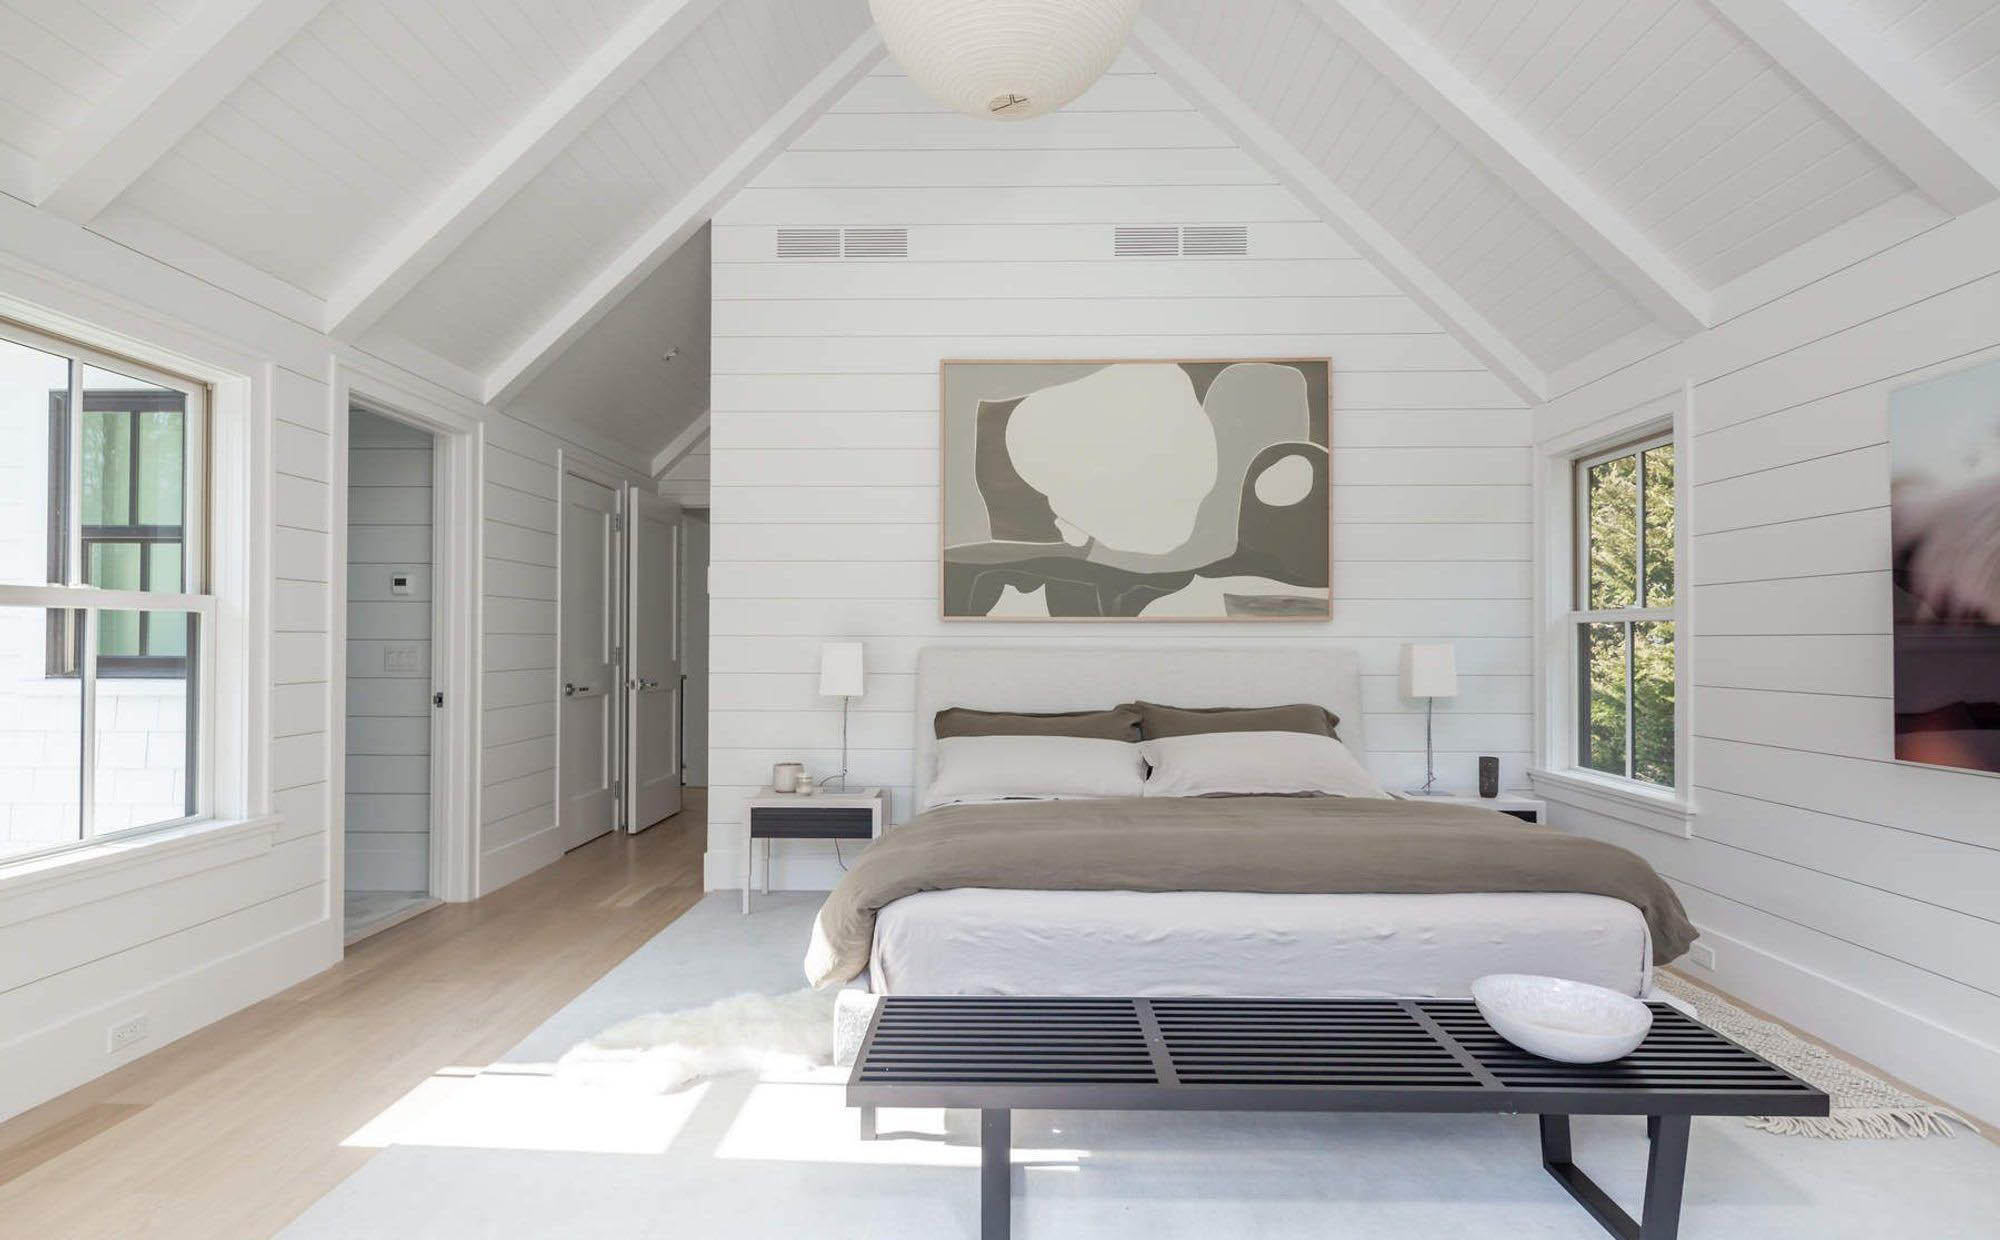 White shiplap walls with vaulted ceilings and exposed beams.